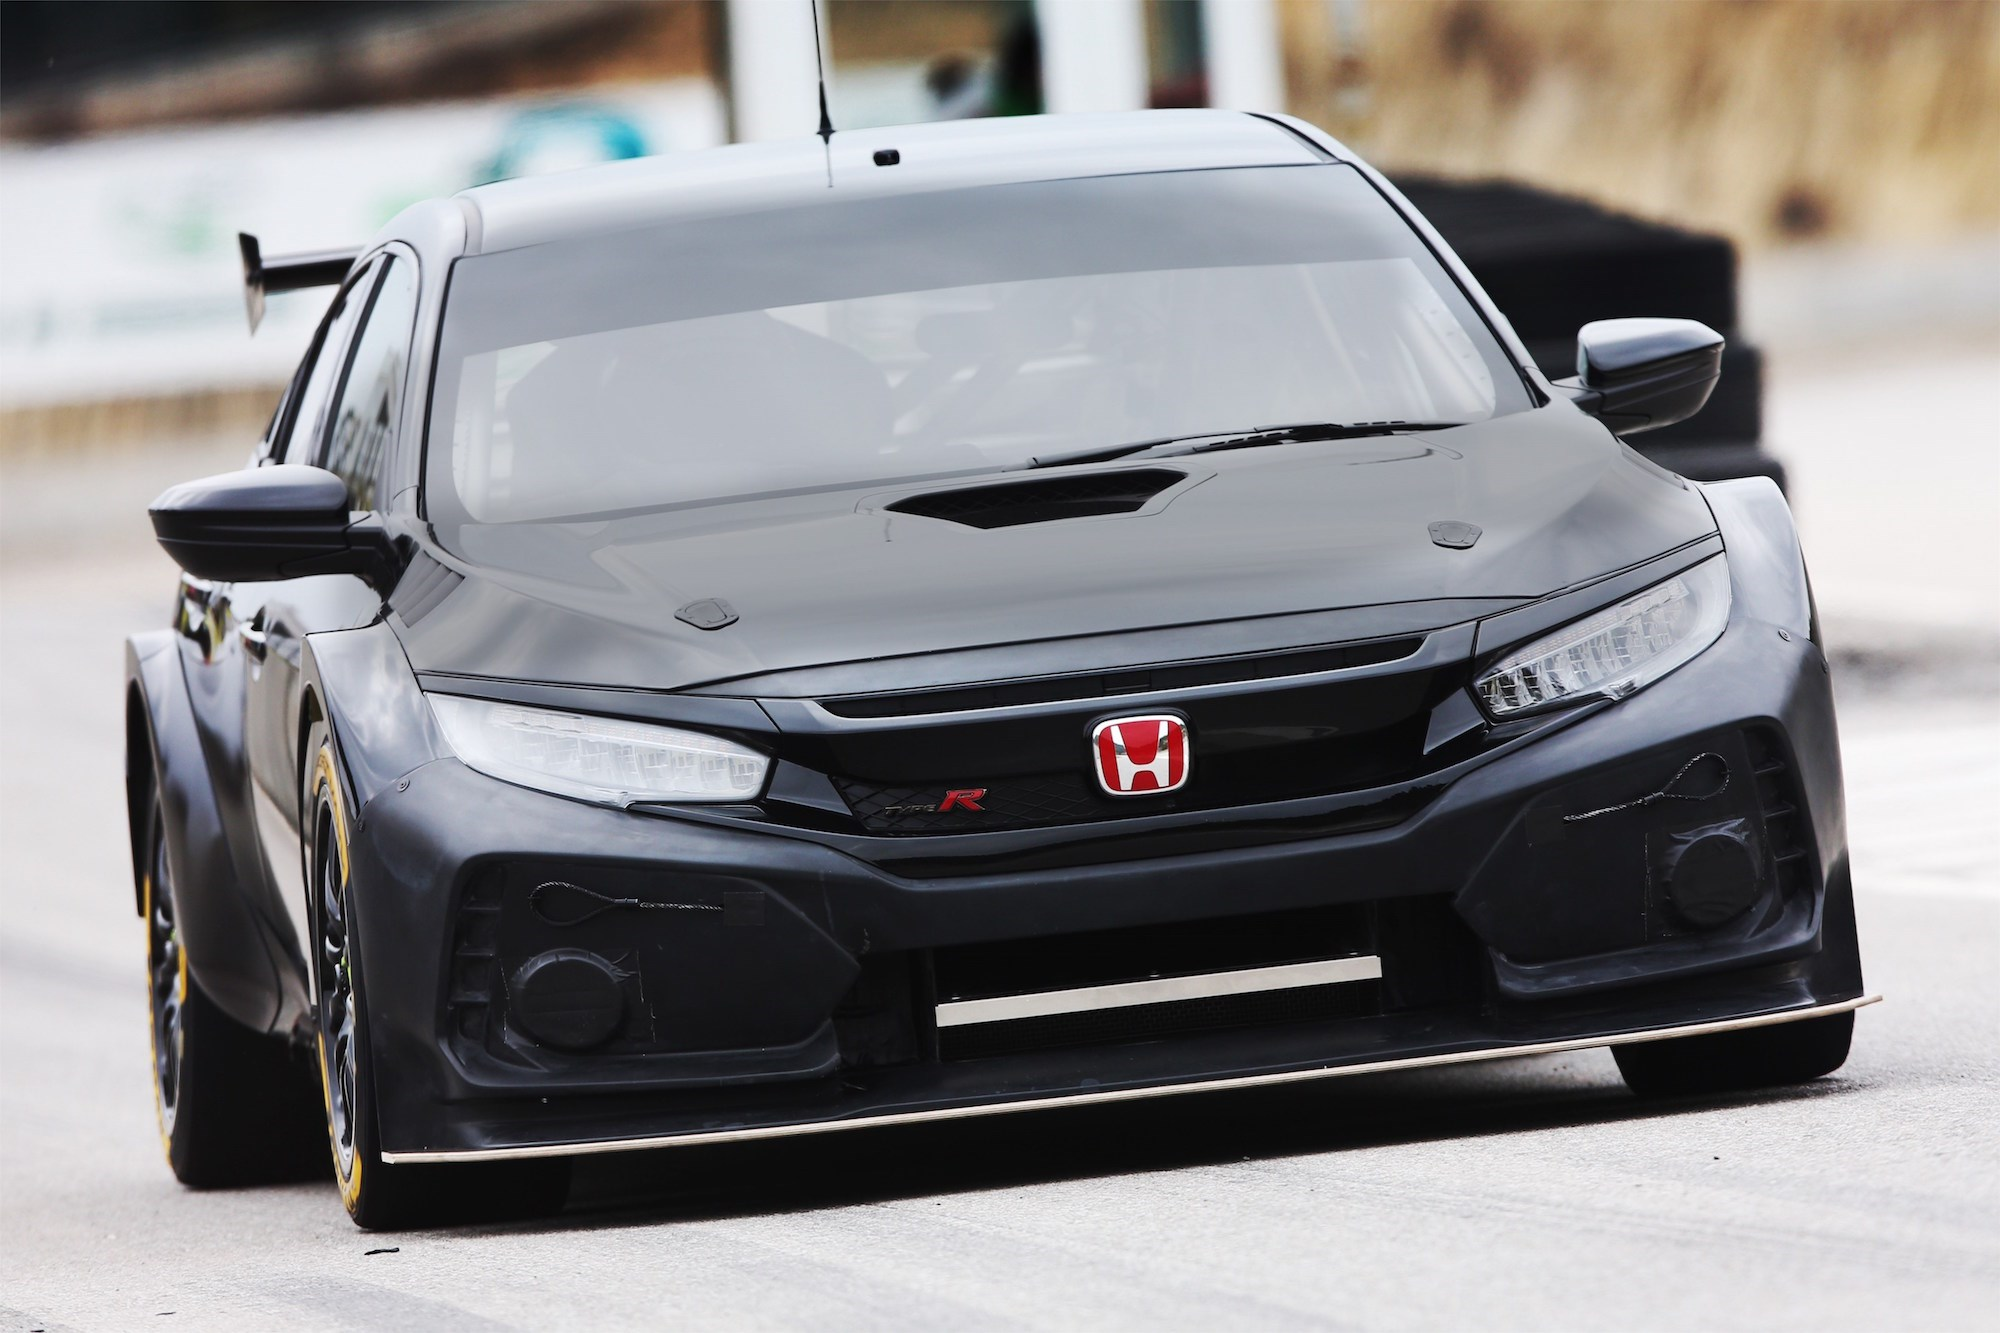 The New Btcc Spec 2018 Honda Civic Type R Looks Incredible